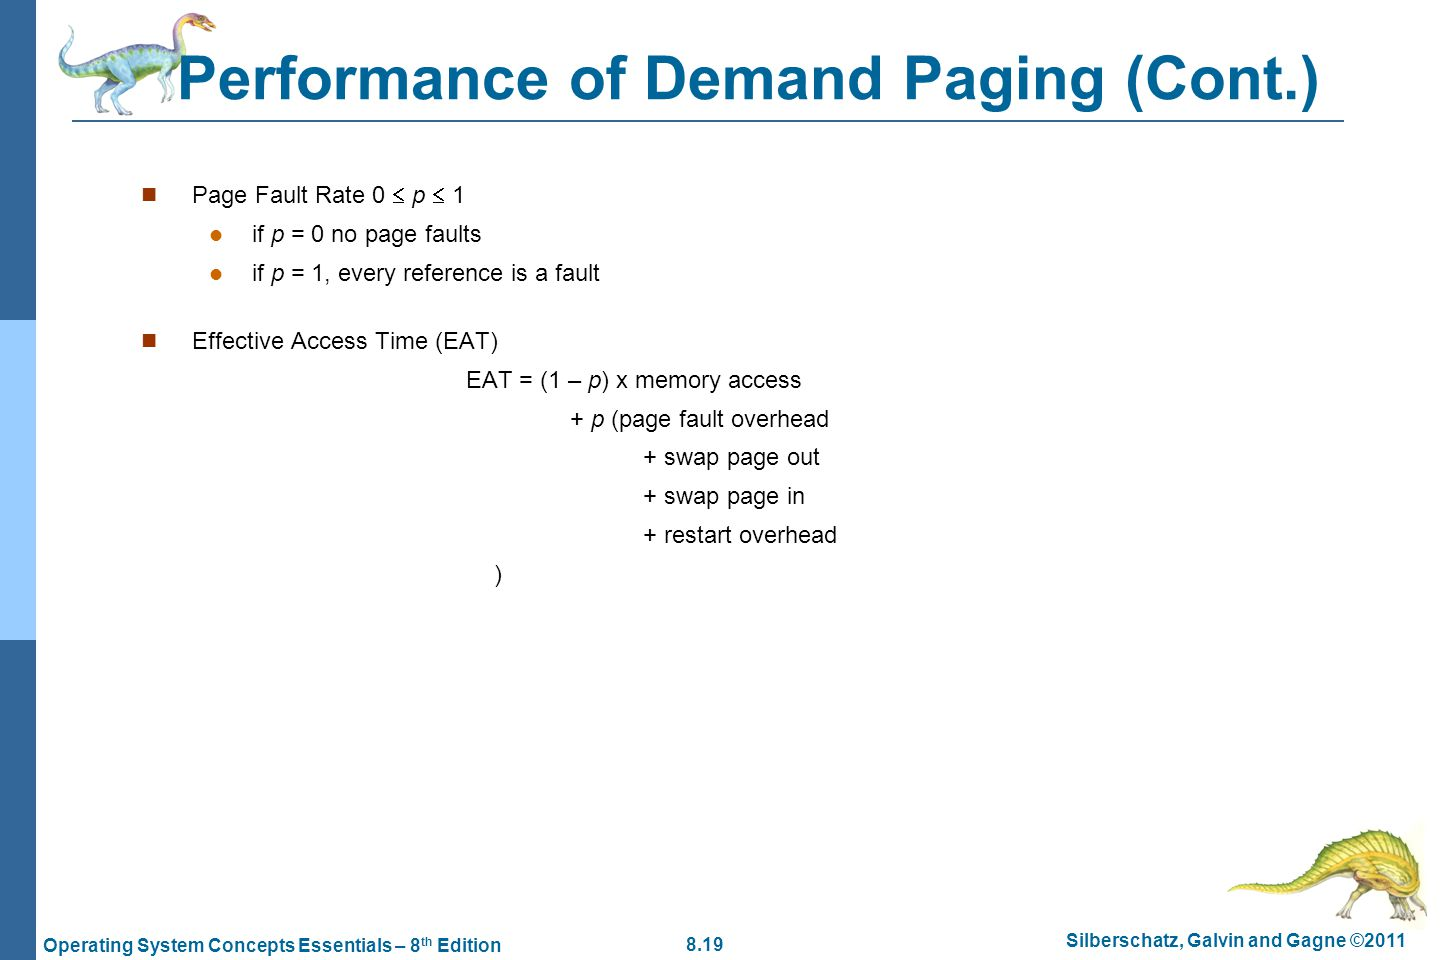 Performance of Demand Paging (Cont.)